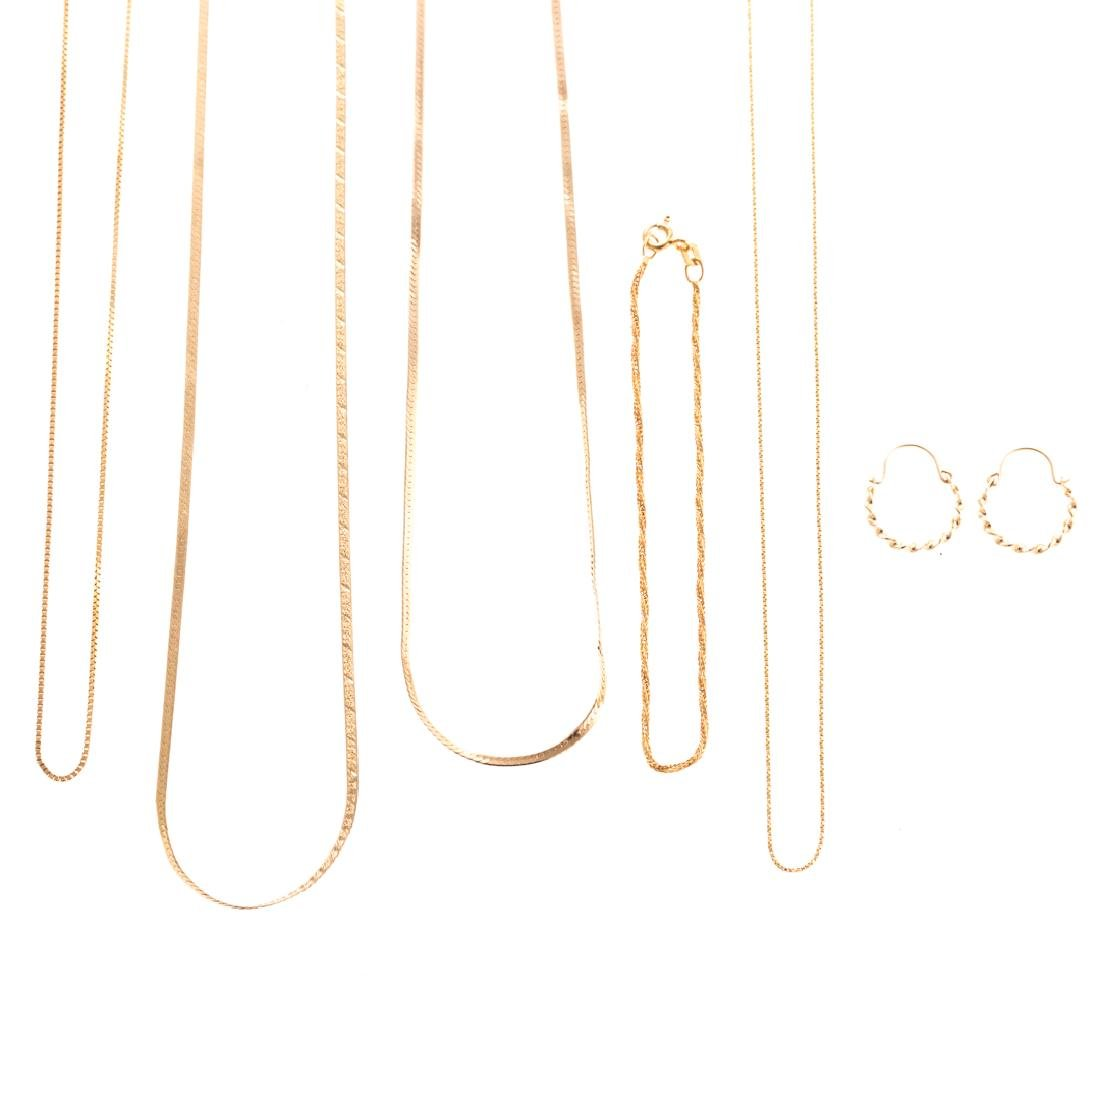 A Collection of Lady's Gold Chain Necklaces